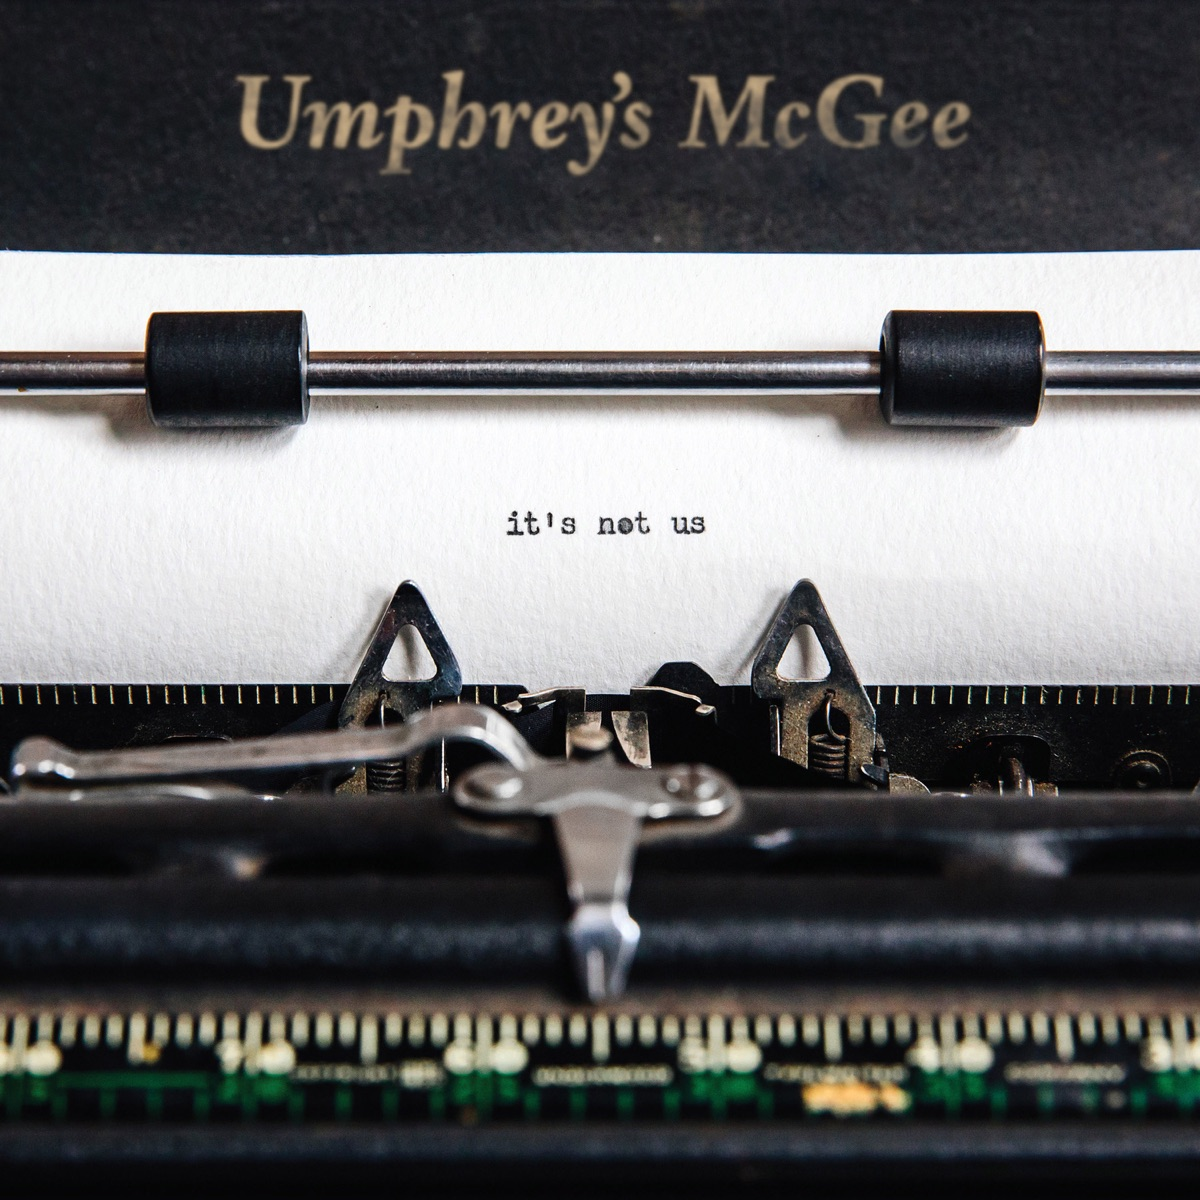 Its Not Us Umphreys McGee CD cover